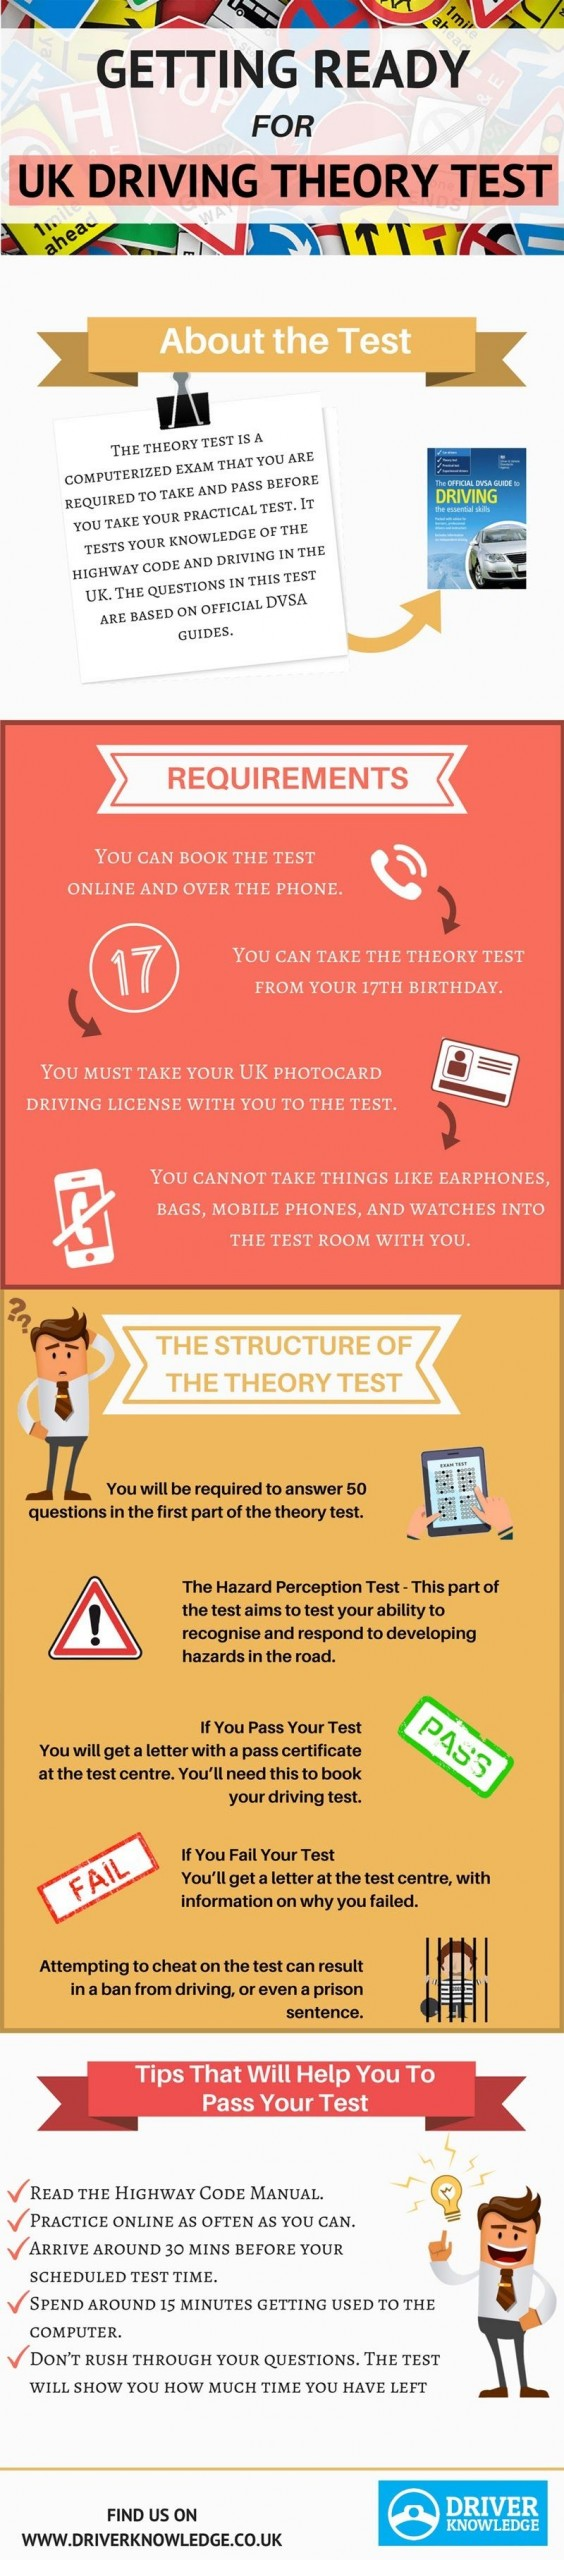 What To Do If You Fail Theory Test